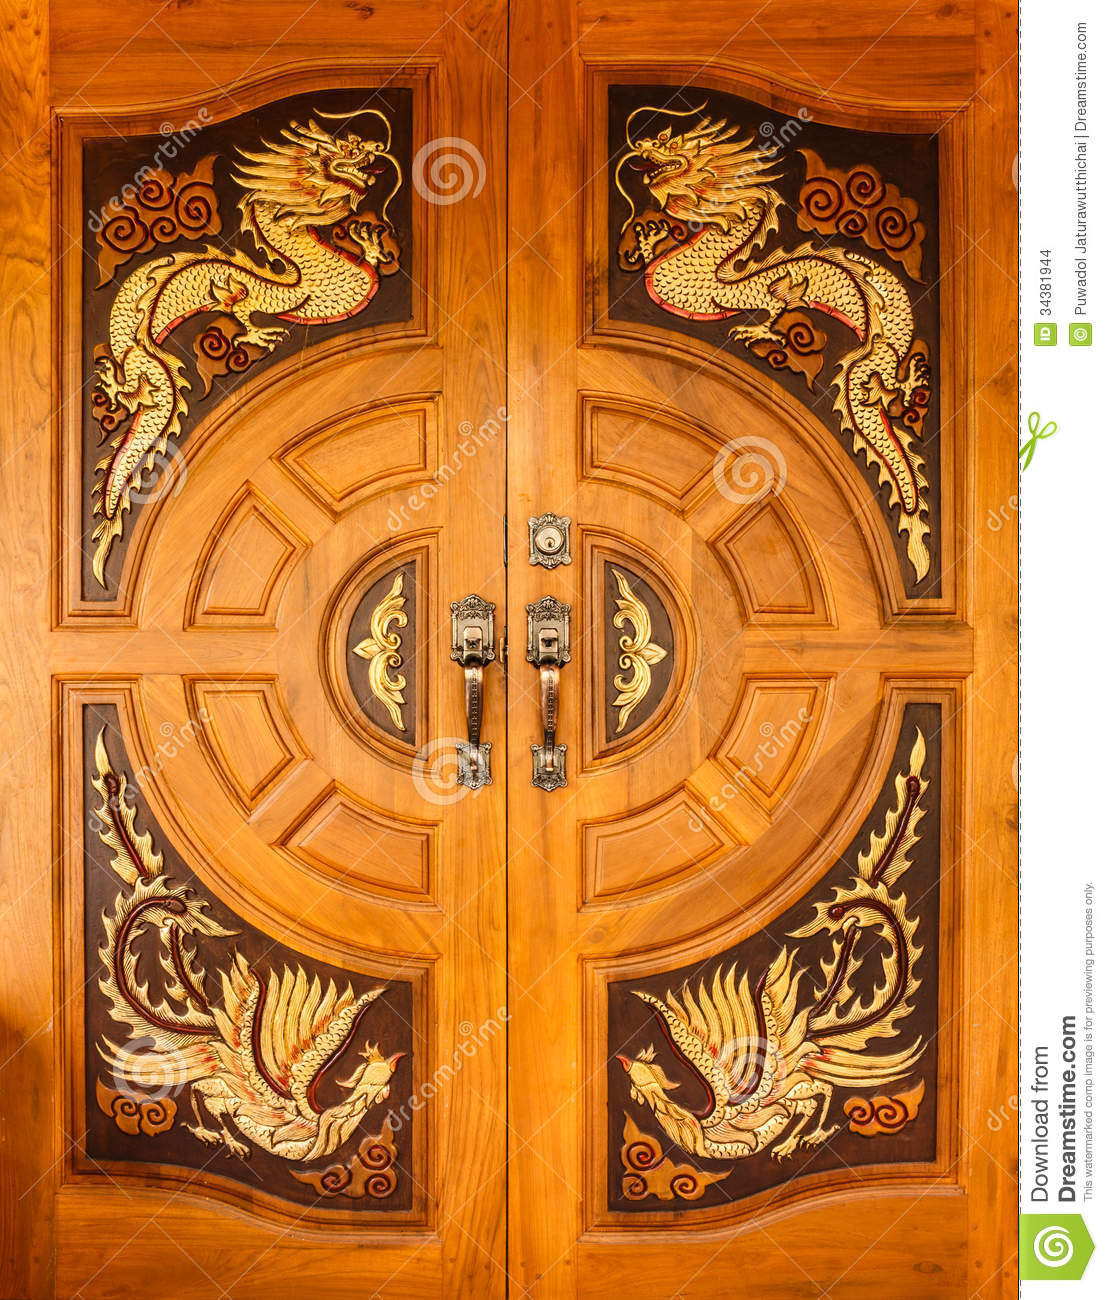 Wood Door With Dragons And Swans Design Stock Photo